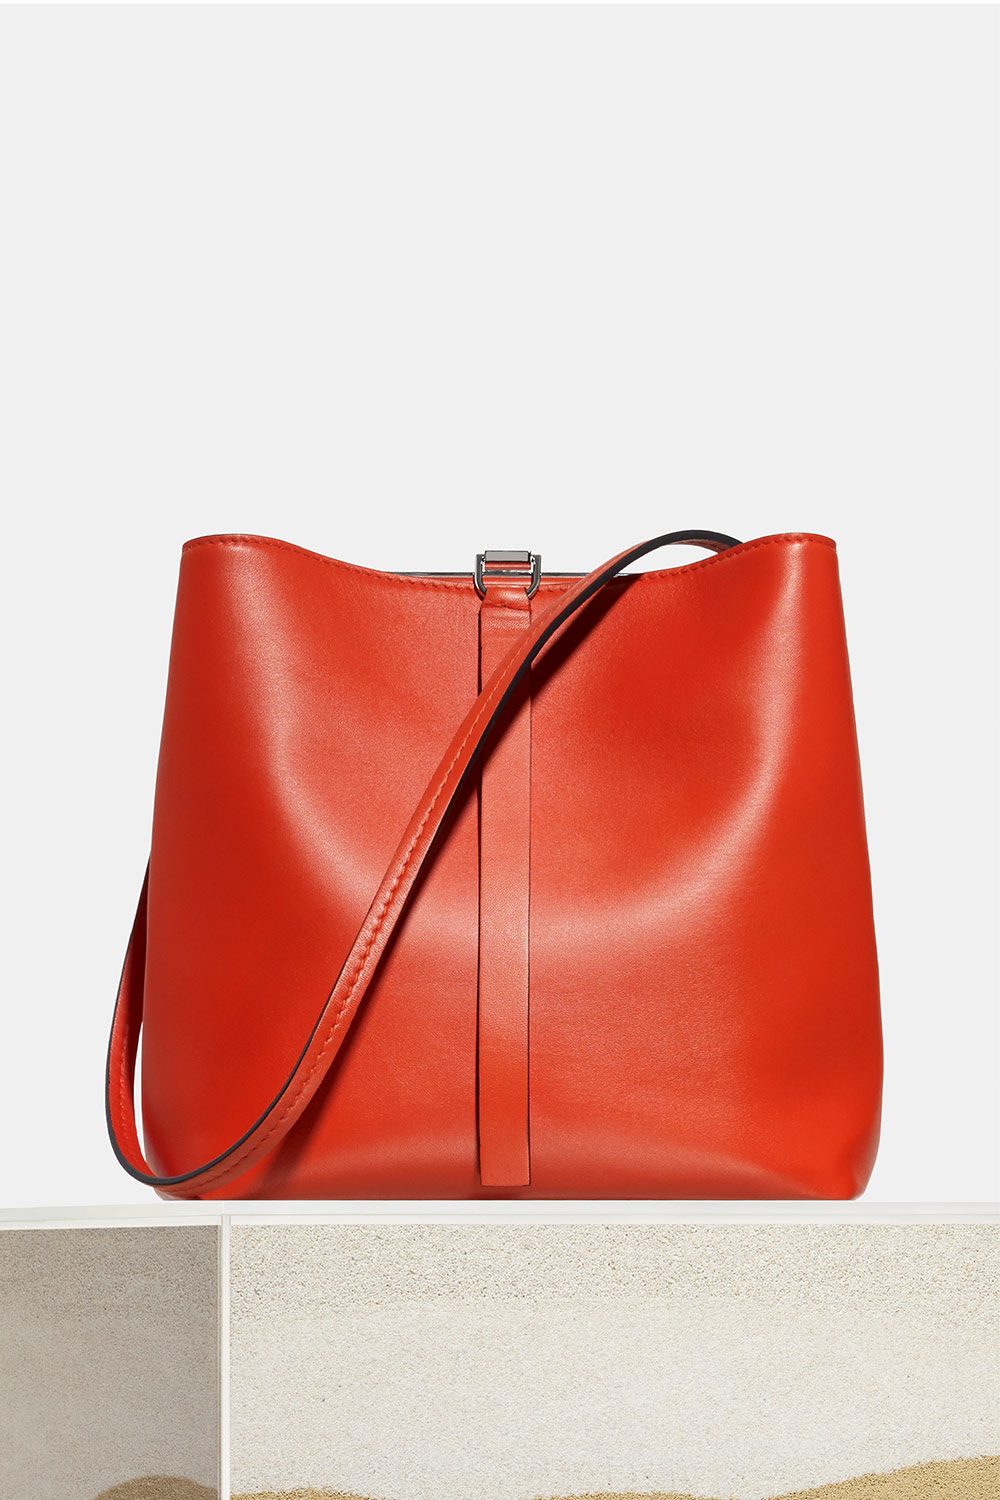 proenza schouler spring 2018 hot coral/black smooth nappa frame shoulder bag